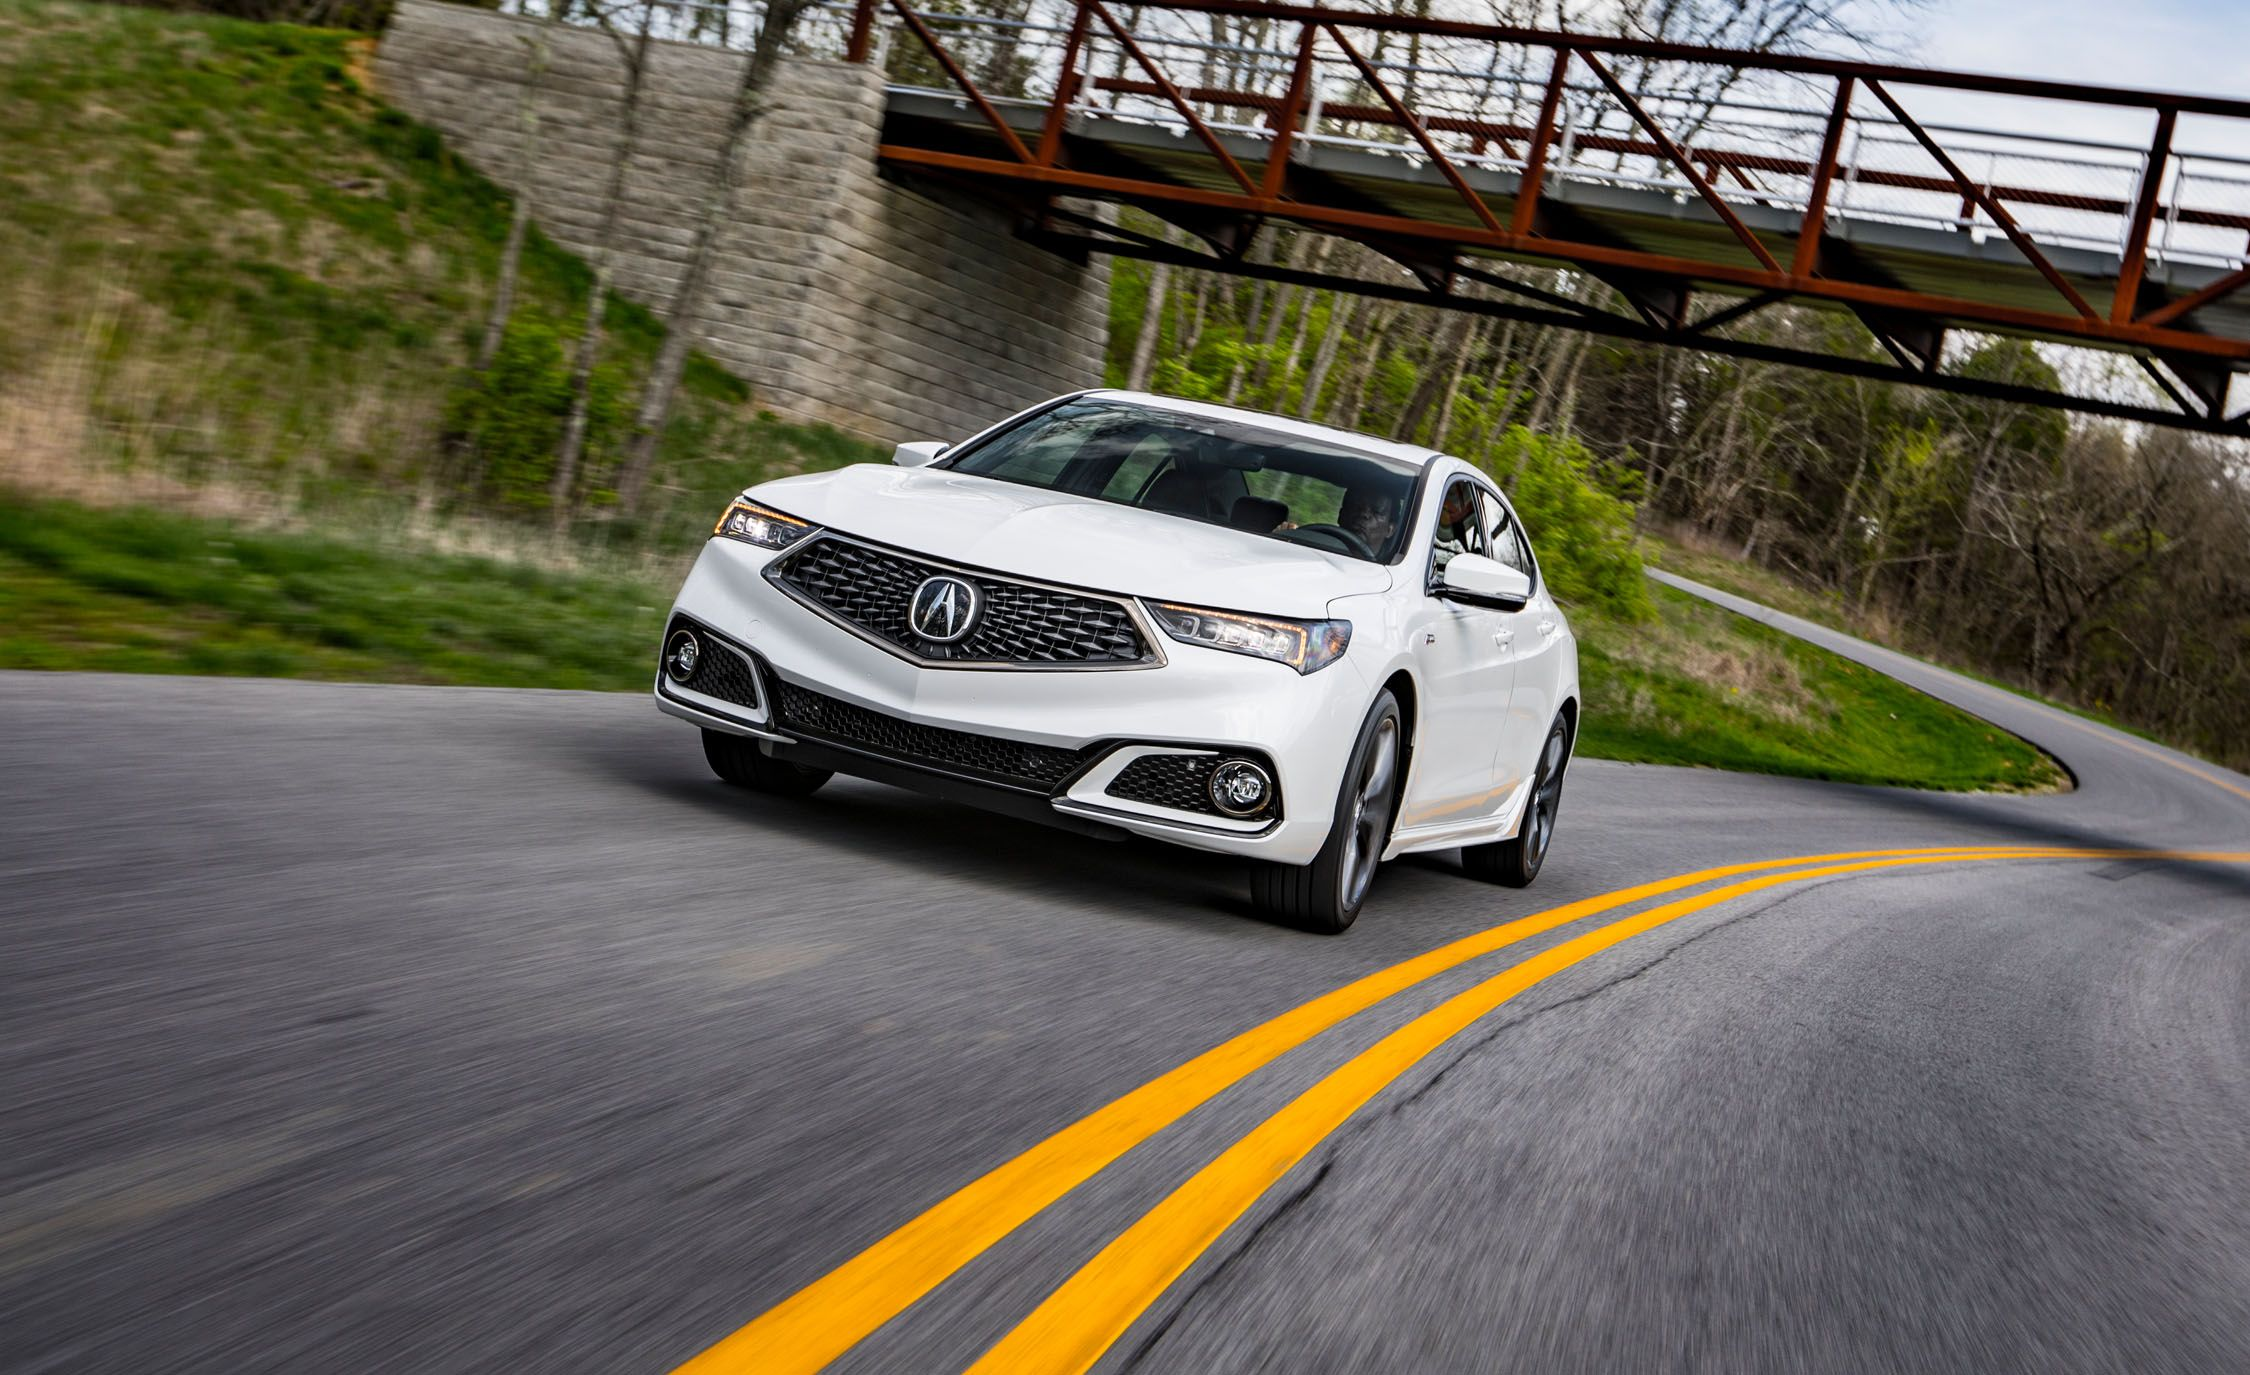 2018 Acura Tlx First Drive Review Car And Driver